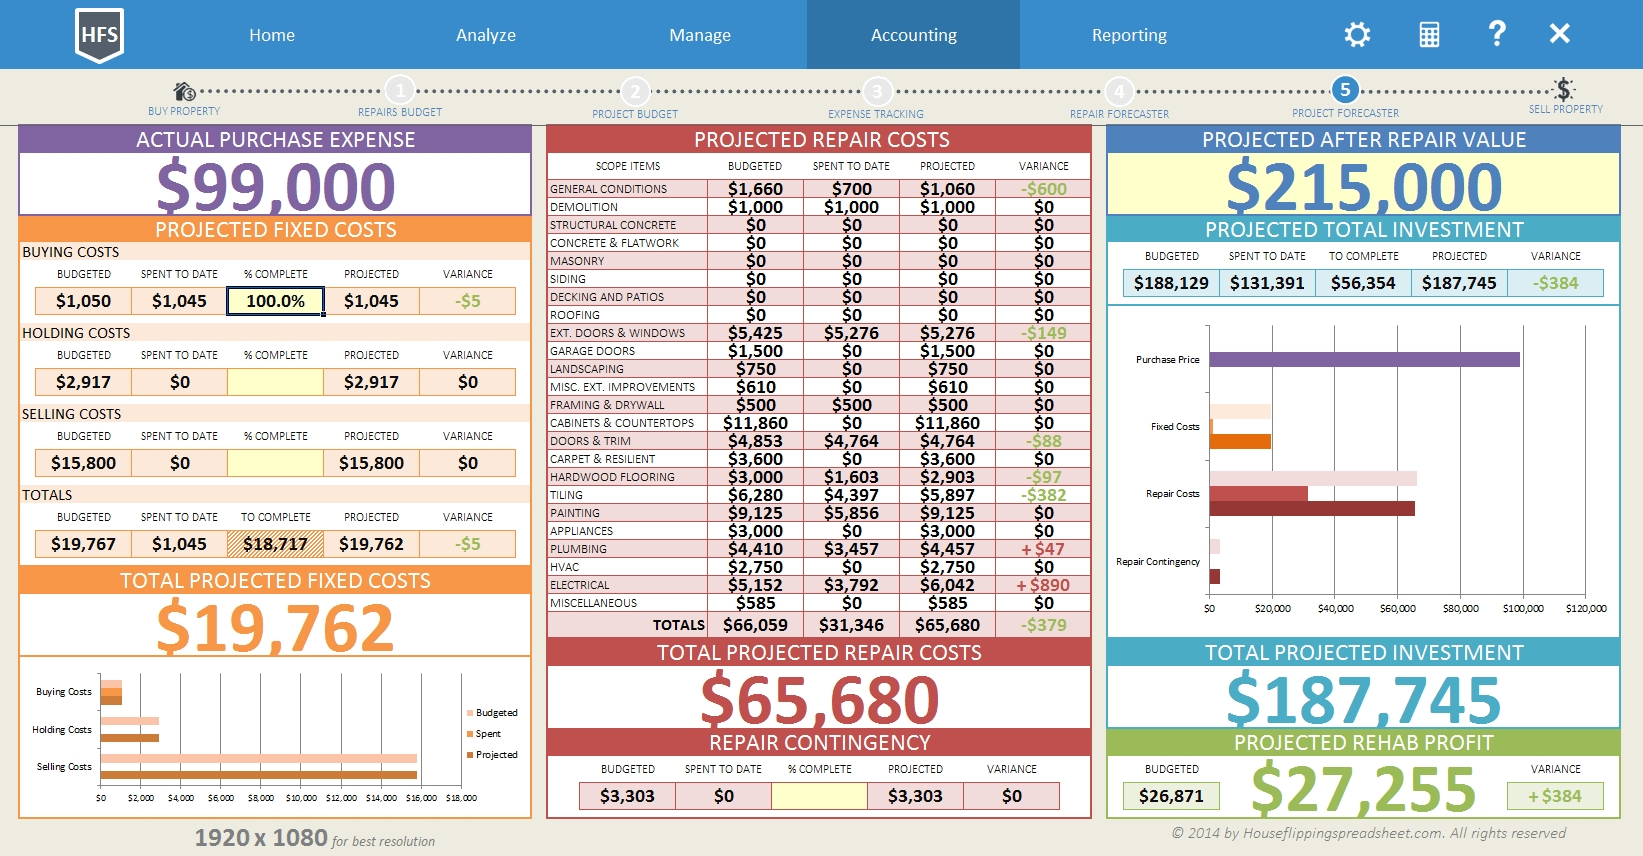 House Flipping Spreadsheet Download For House Flipping Spreadsheet Template Free Download Coupon  Askoverflow